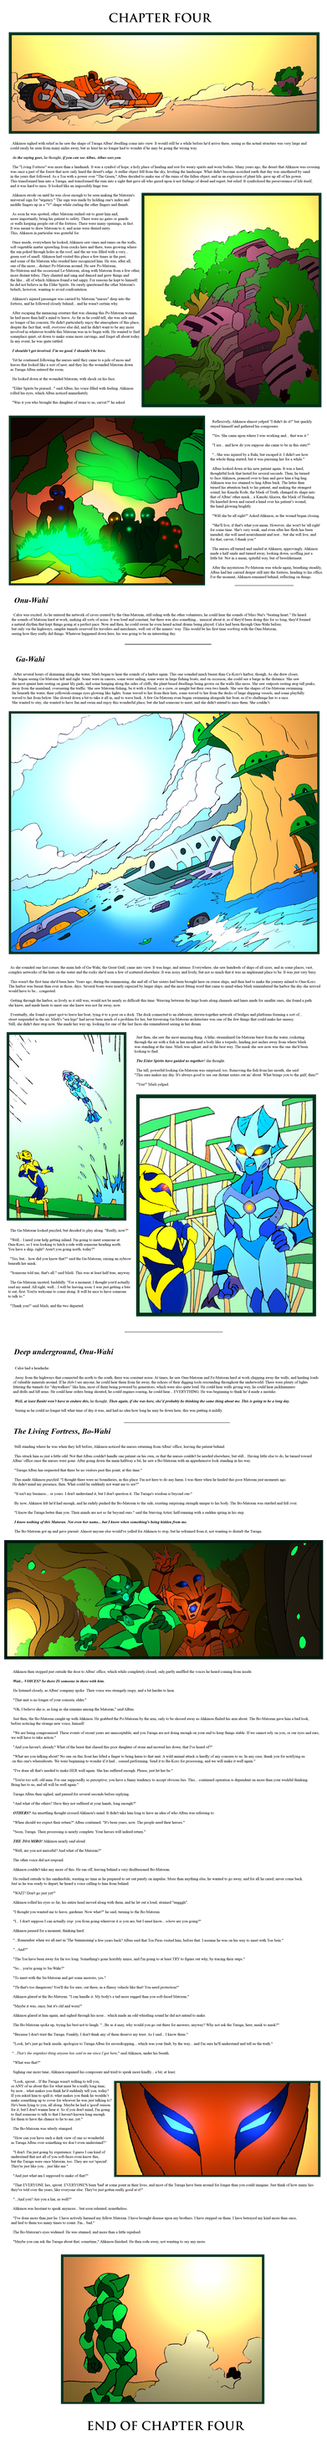 Bionicle- Nova Orbis- Mystery- Chapter 4 by NickinAmerica